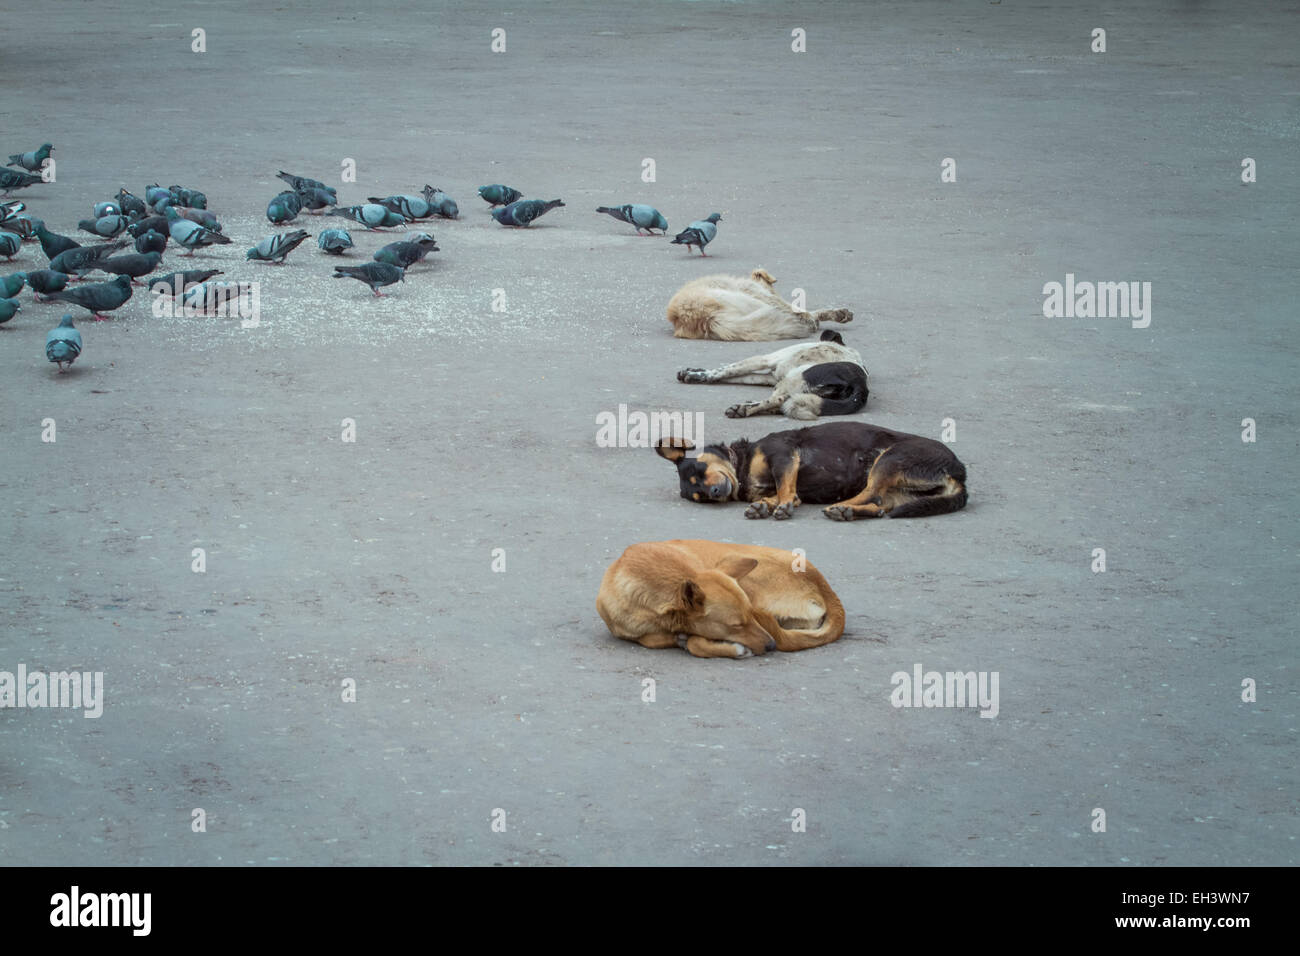 sleeping dogs and pigeons, Darjeeling, India - Stock Image